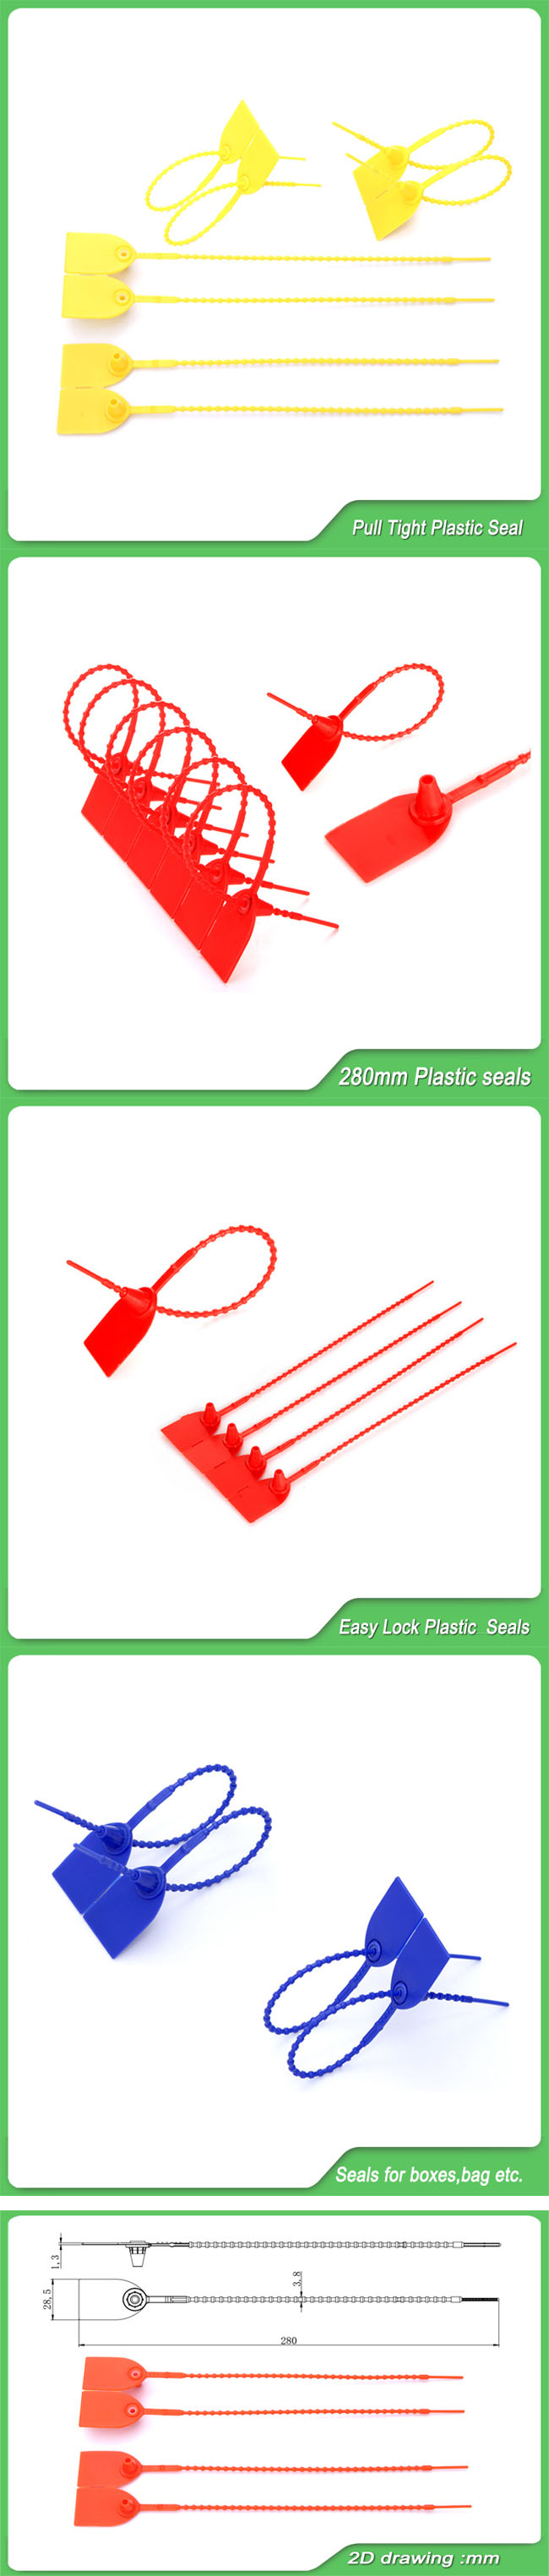 High Security Plastic Seal (JY280B)